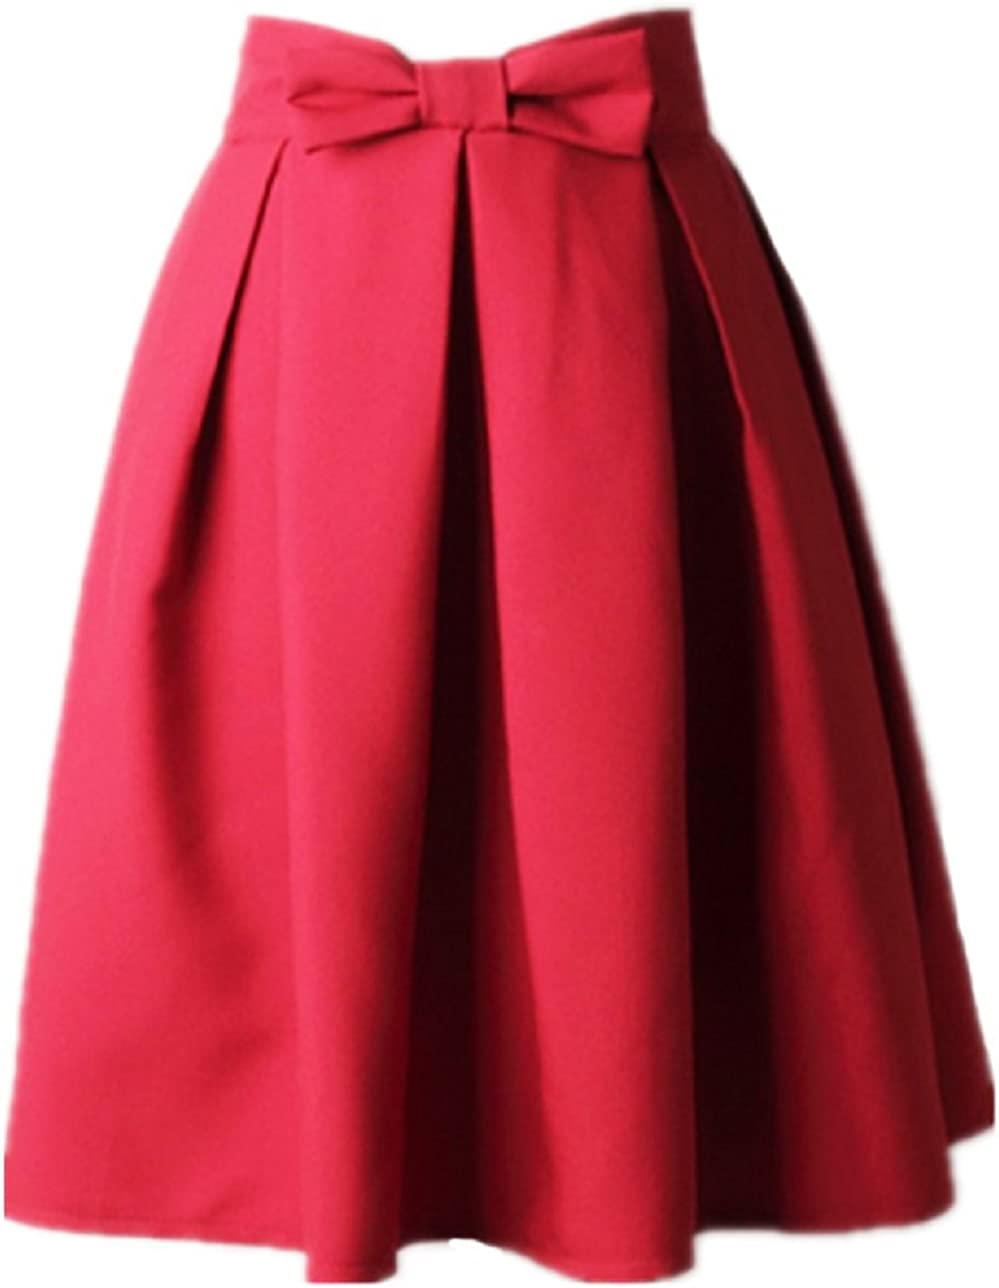 Women/'s A Line Pleated Vintage Skirt High Waist Midi Skater with Bow Tie